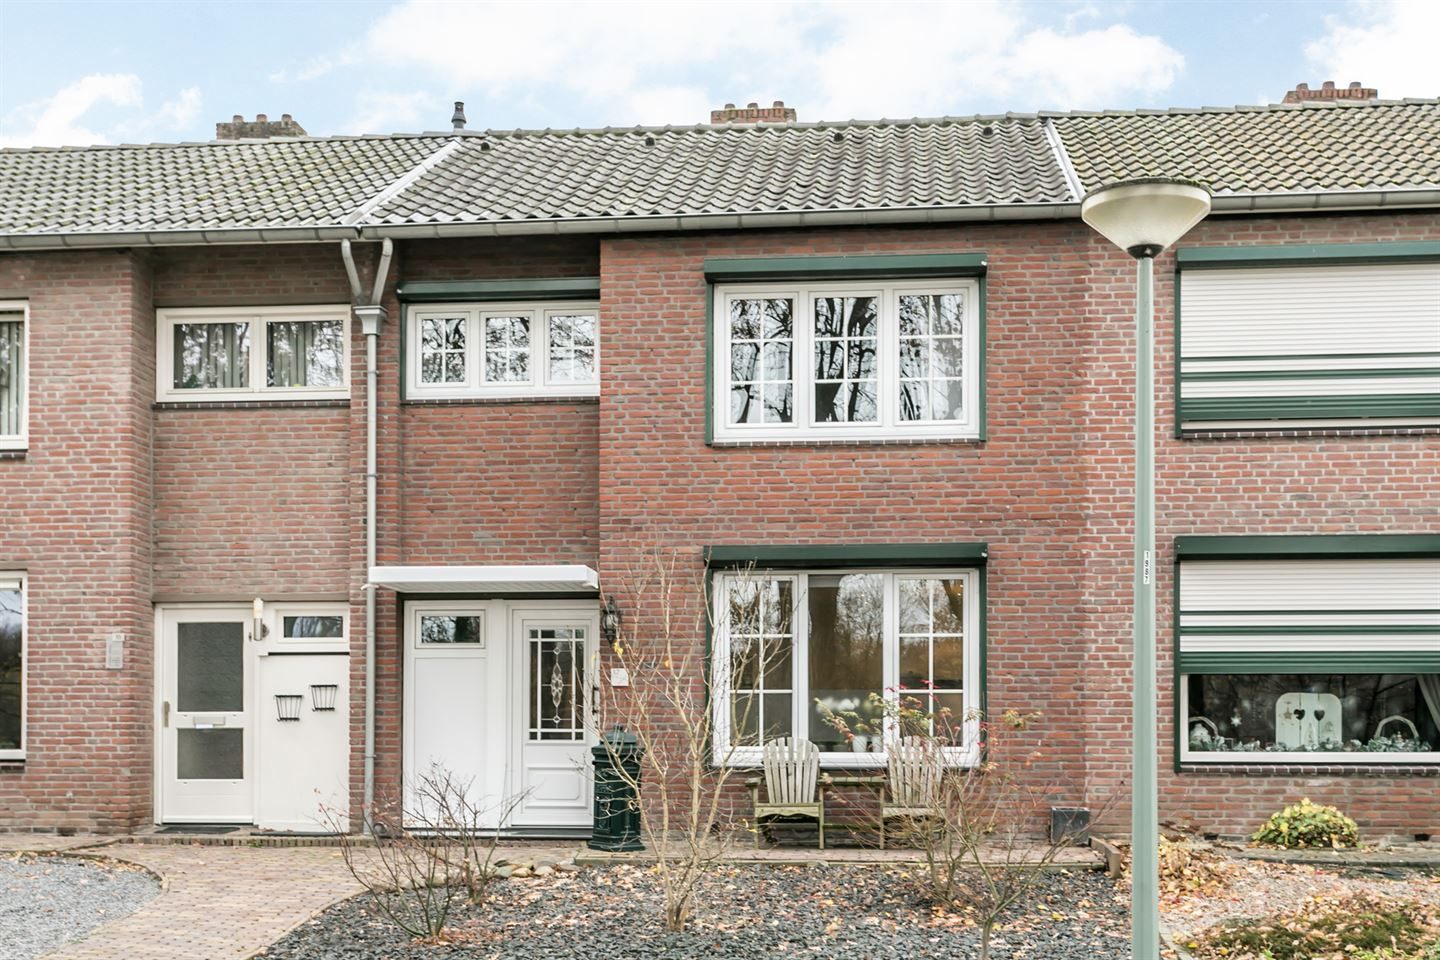 Wat Kost Een Vlizotrap Of Verkocht Peerdendries 37 6442 As Brunssum Funda